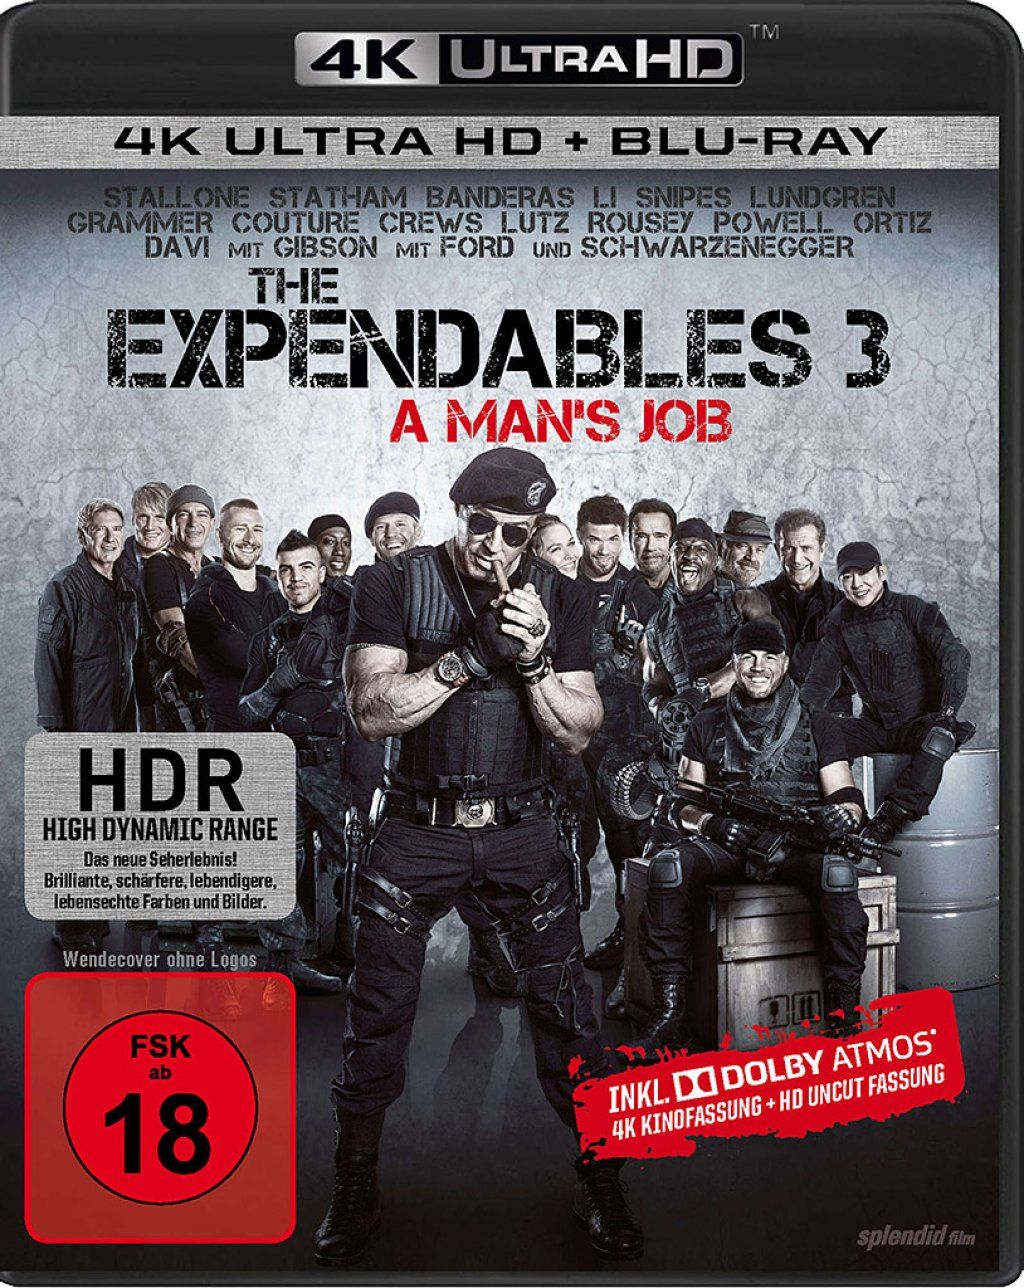 Expendables 3, The - A Mans Job (2 Discs) (UHD BLURAY + BLURAY)